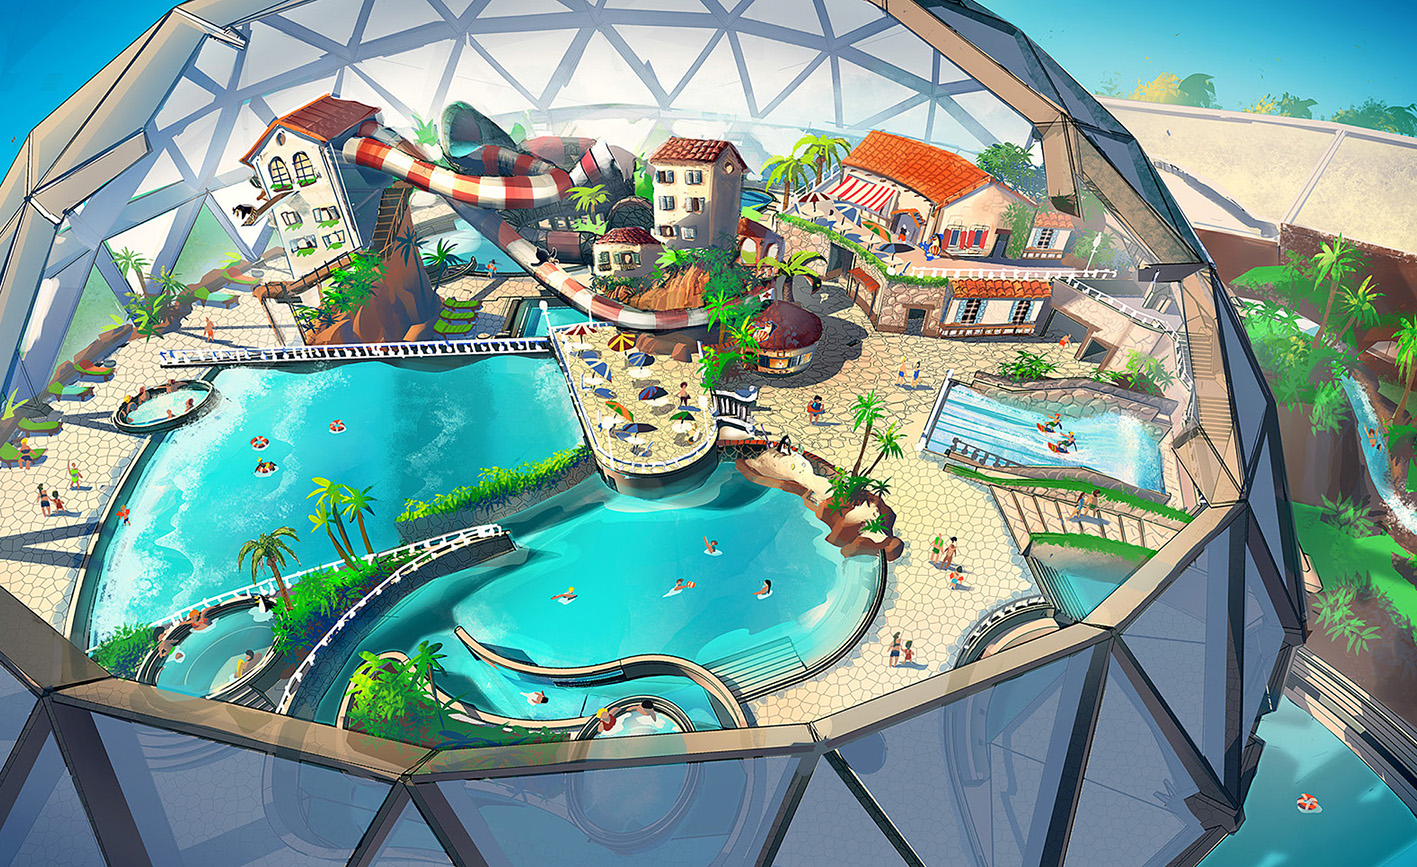 ADVENTURE WORLD WARSAW AQUA DOME  <strong>| A complete design for an indoor water park</strong>